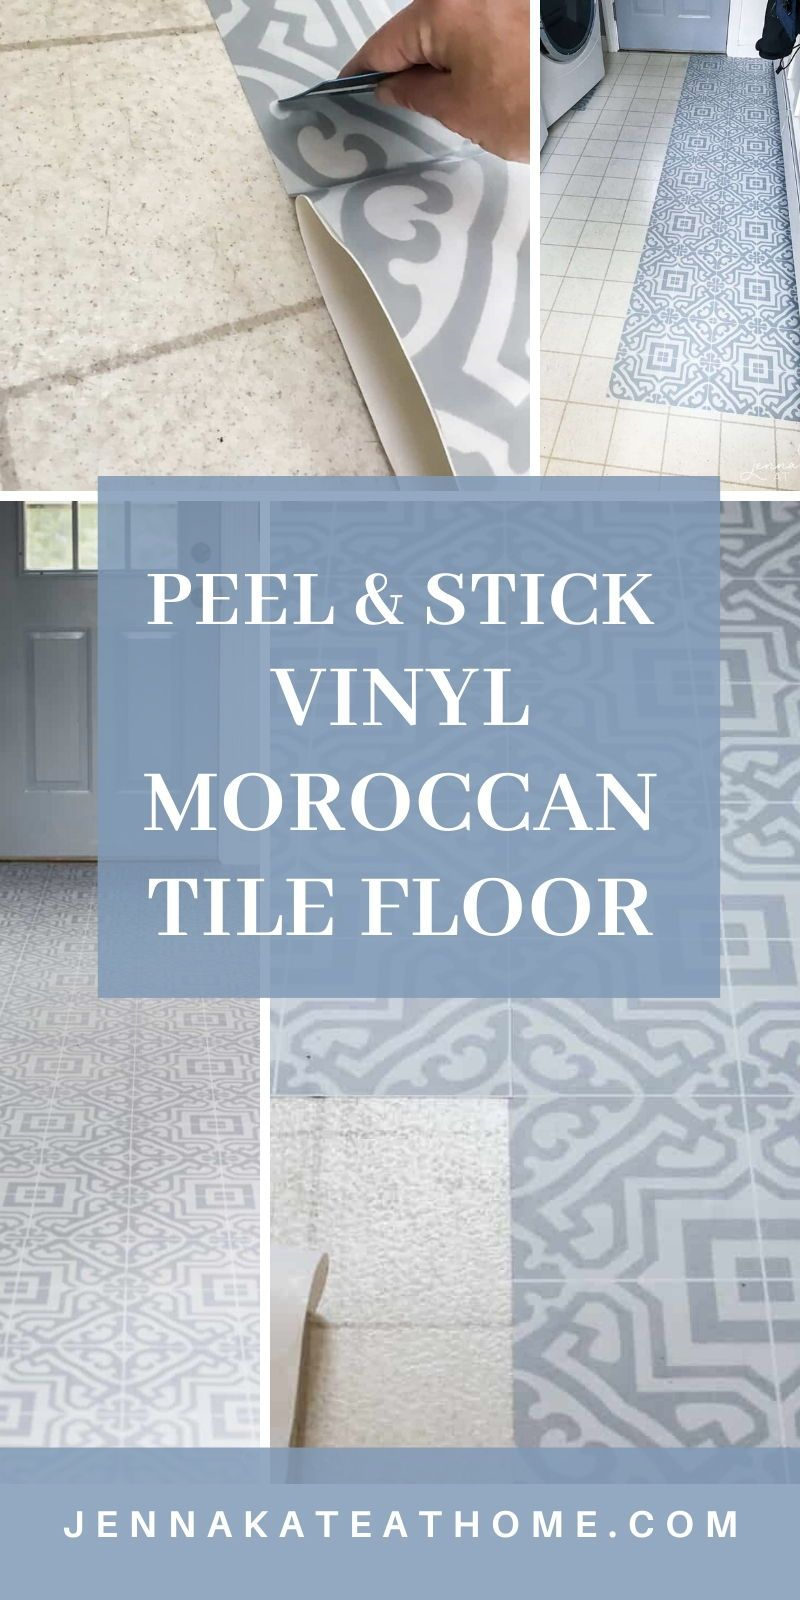 The Laundry Room Floor In 2020 Laundry Room Flooring Room Flooring Linoleum Flooring